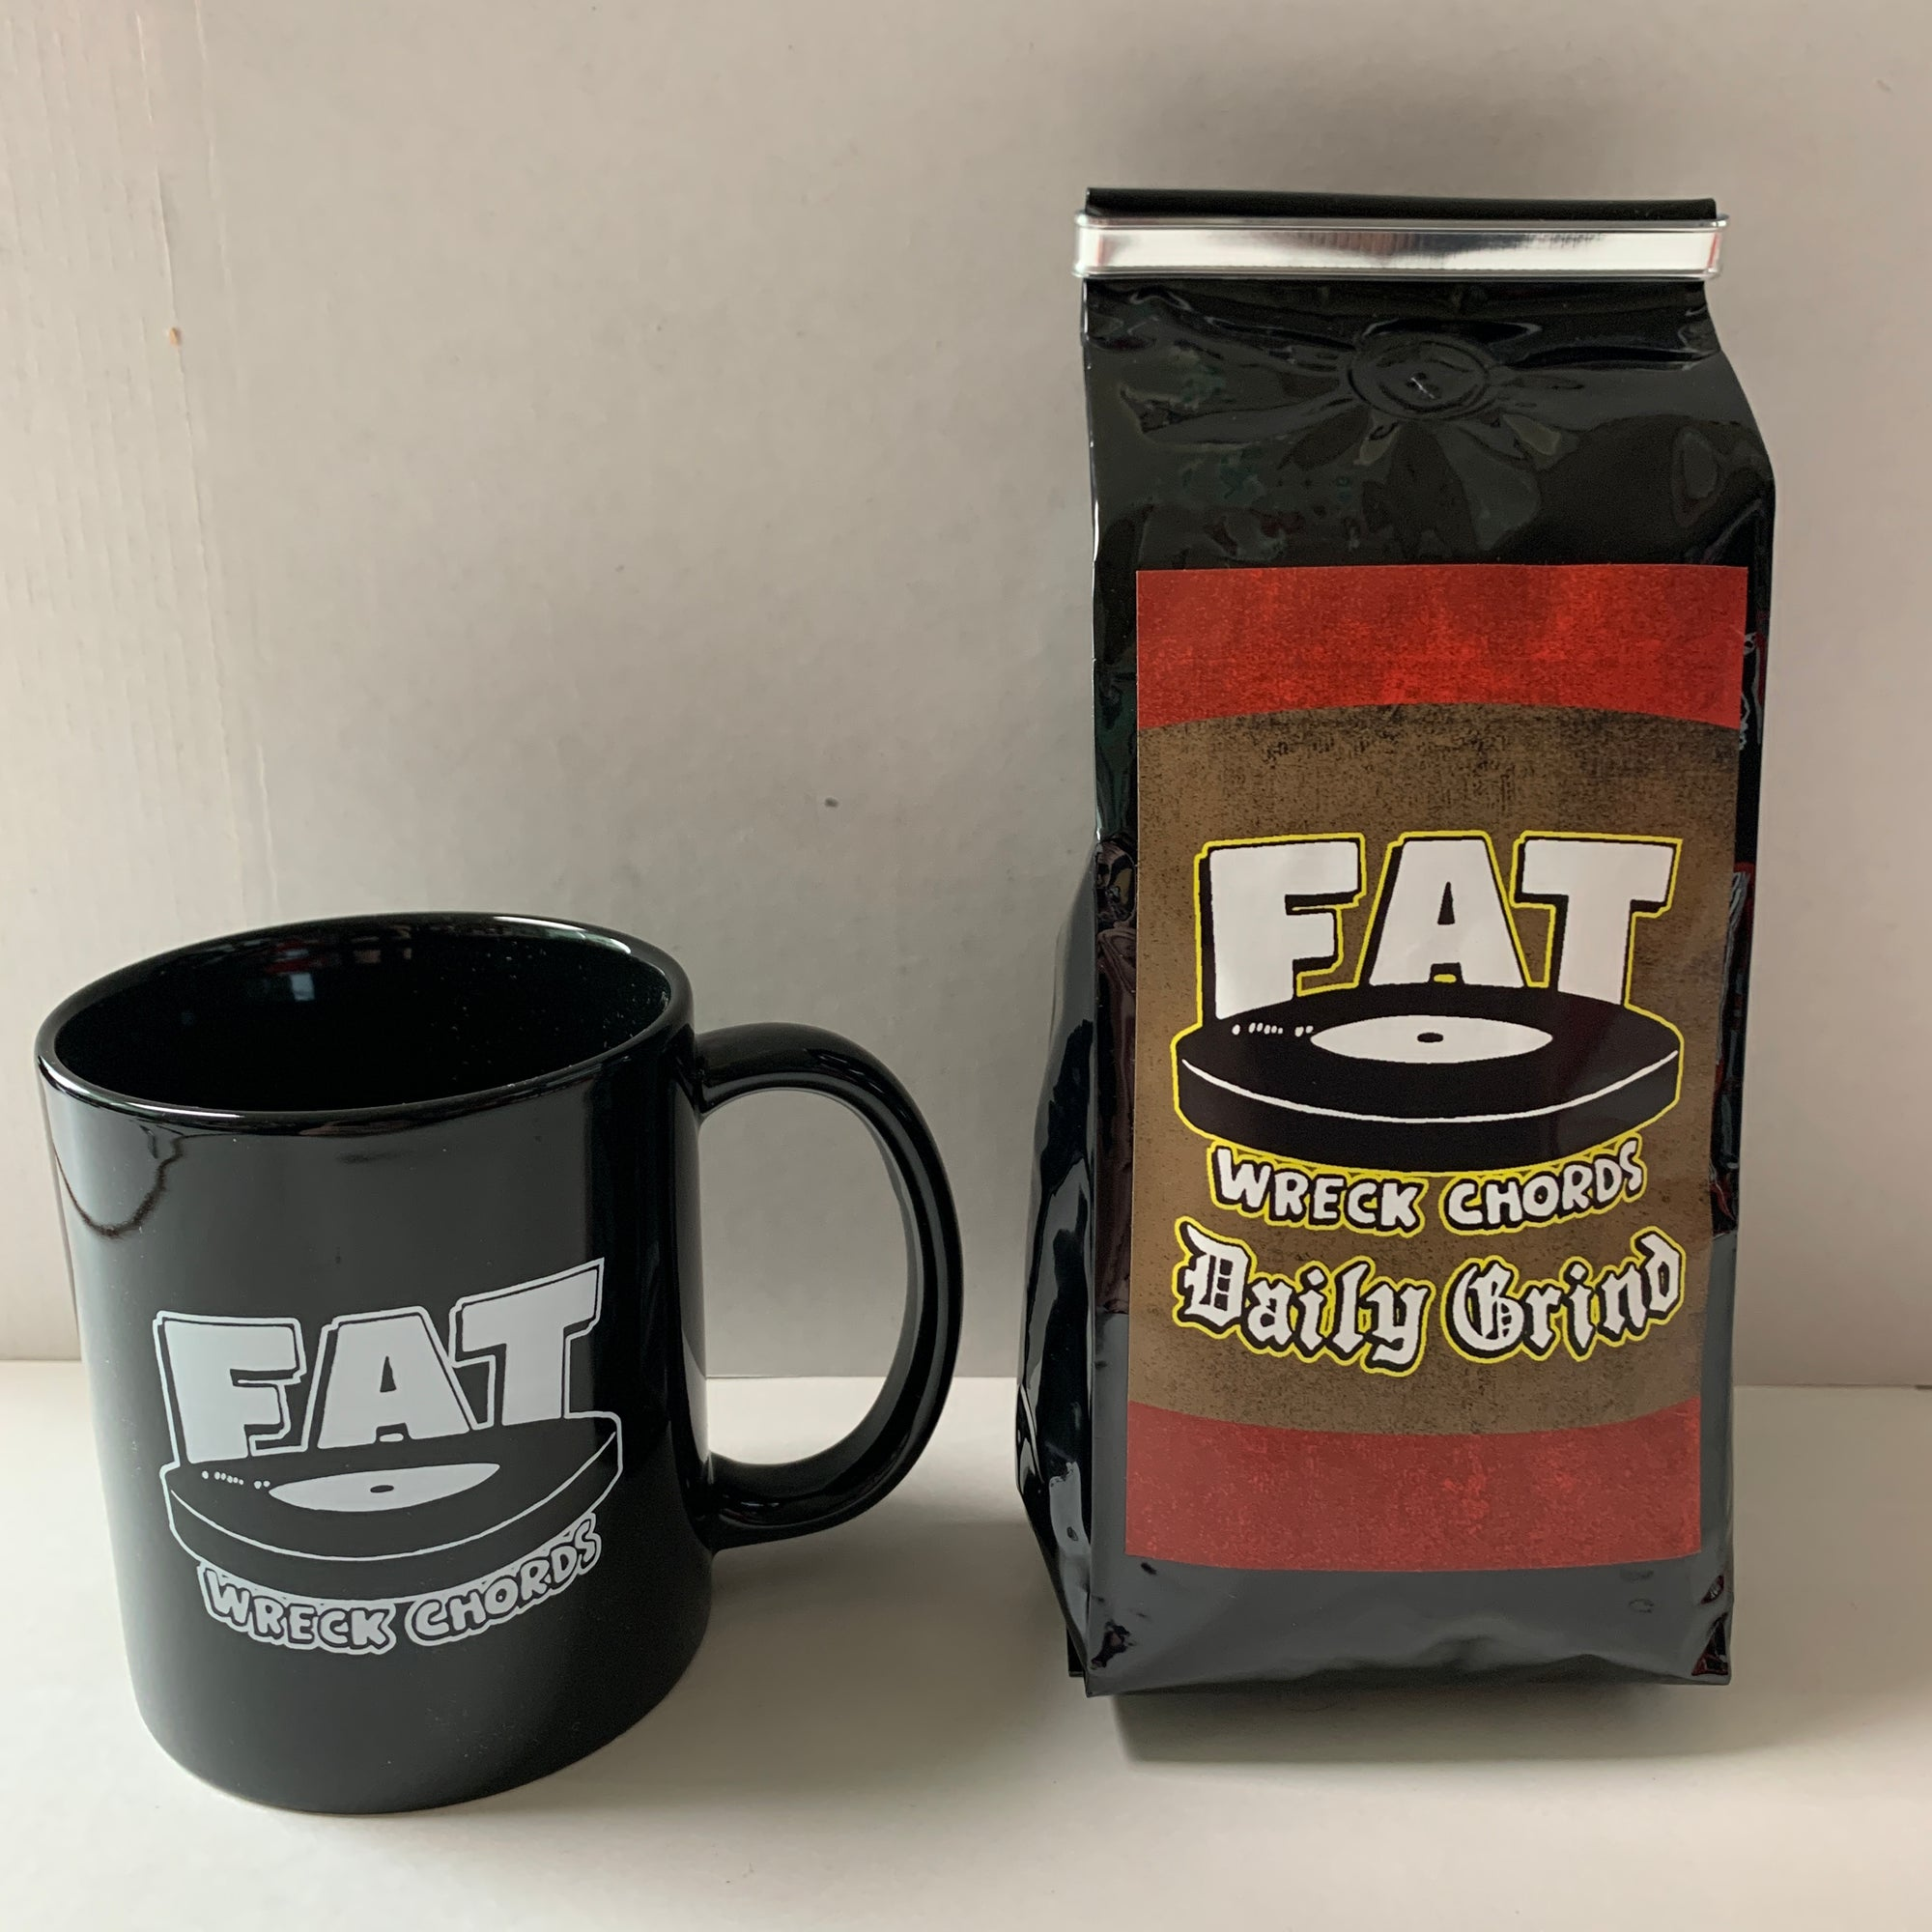 Fat Wreck Chords 'Daily Grind' Coffee Bundle